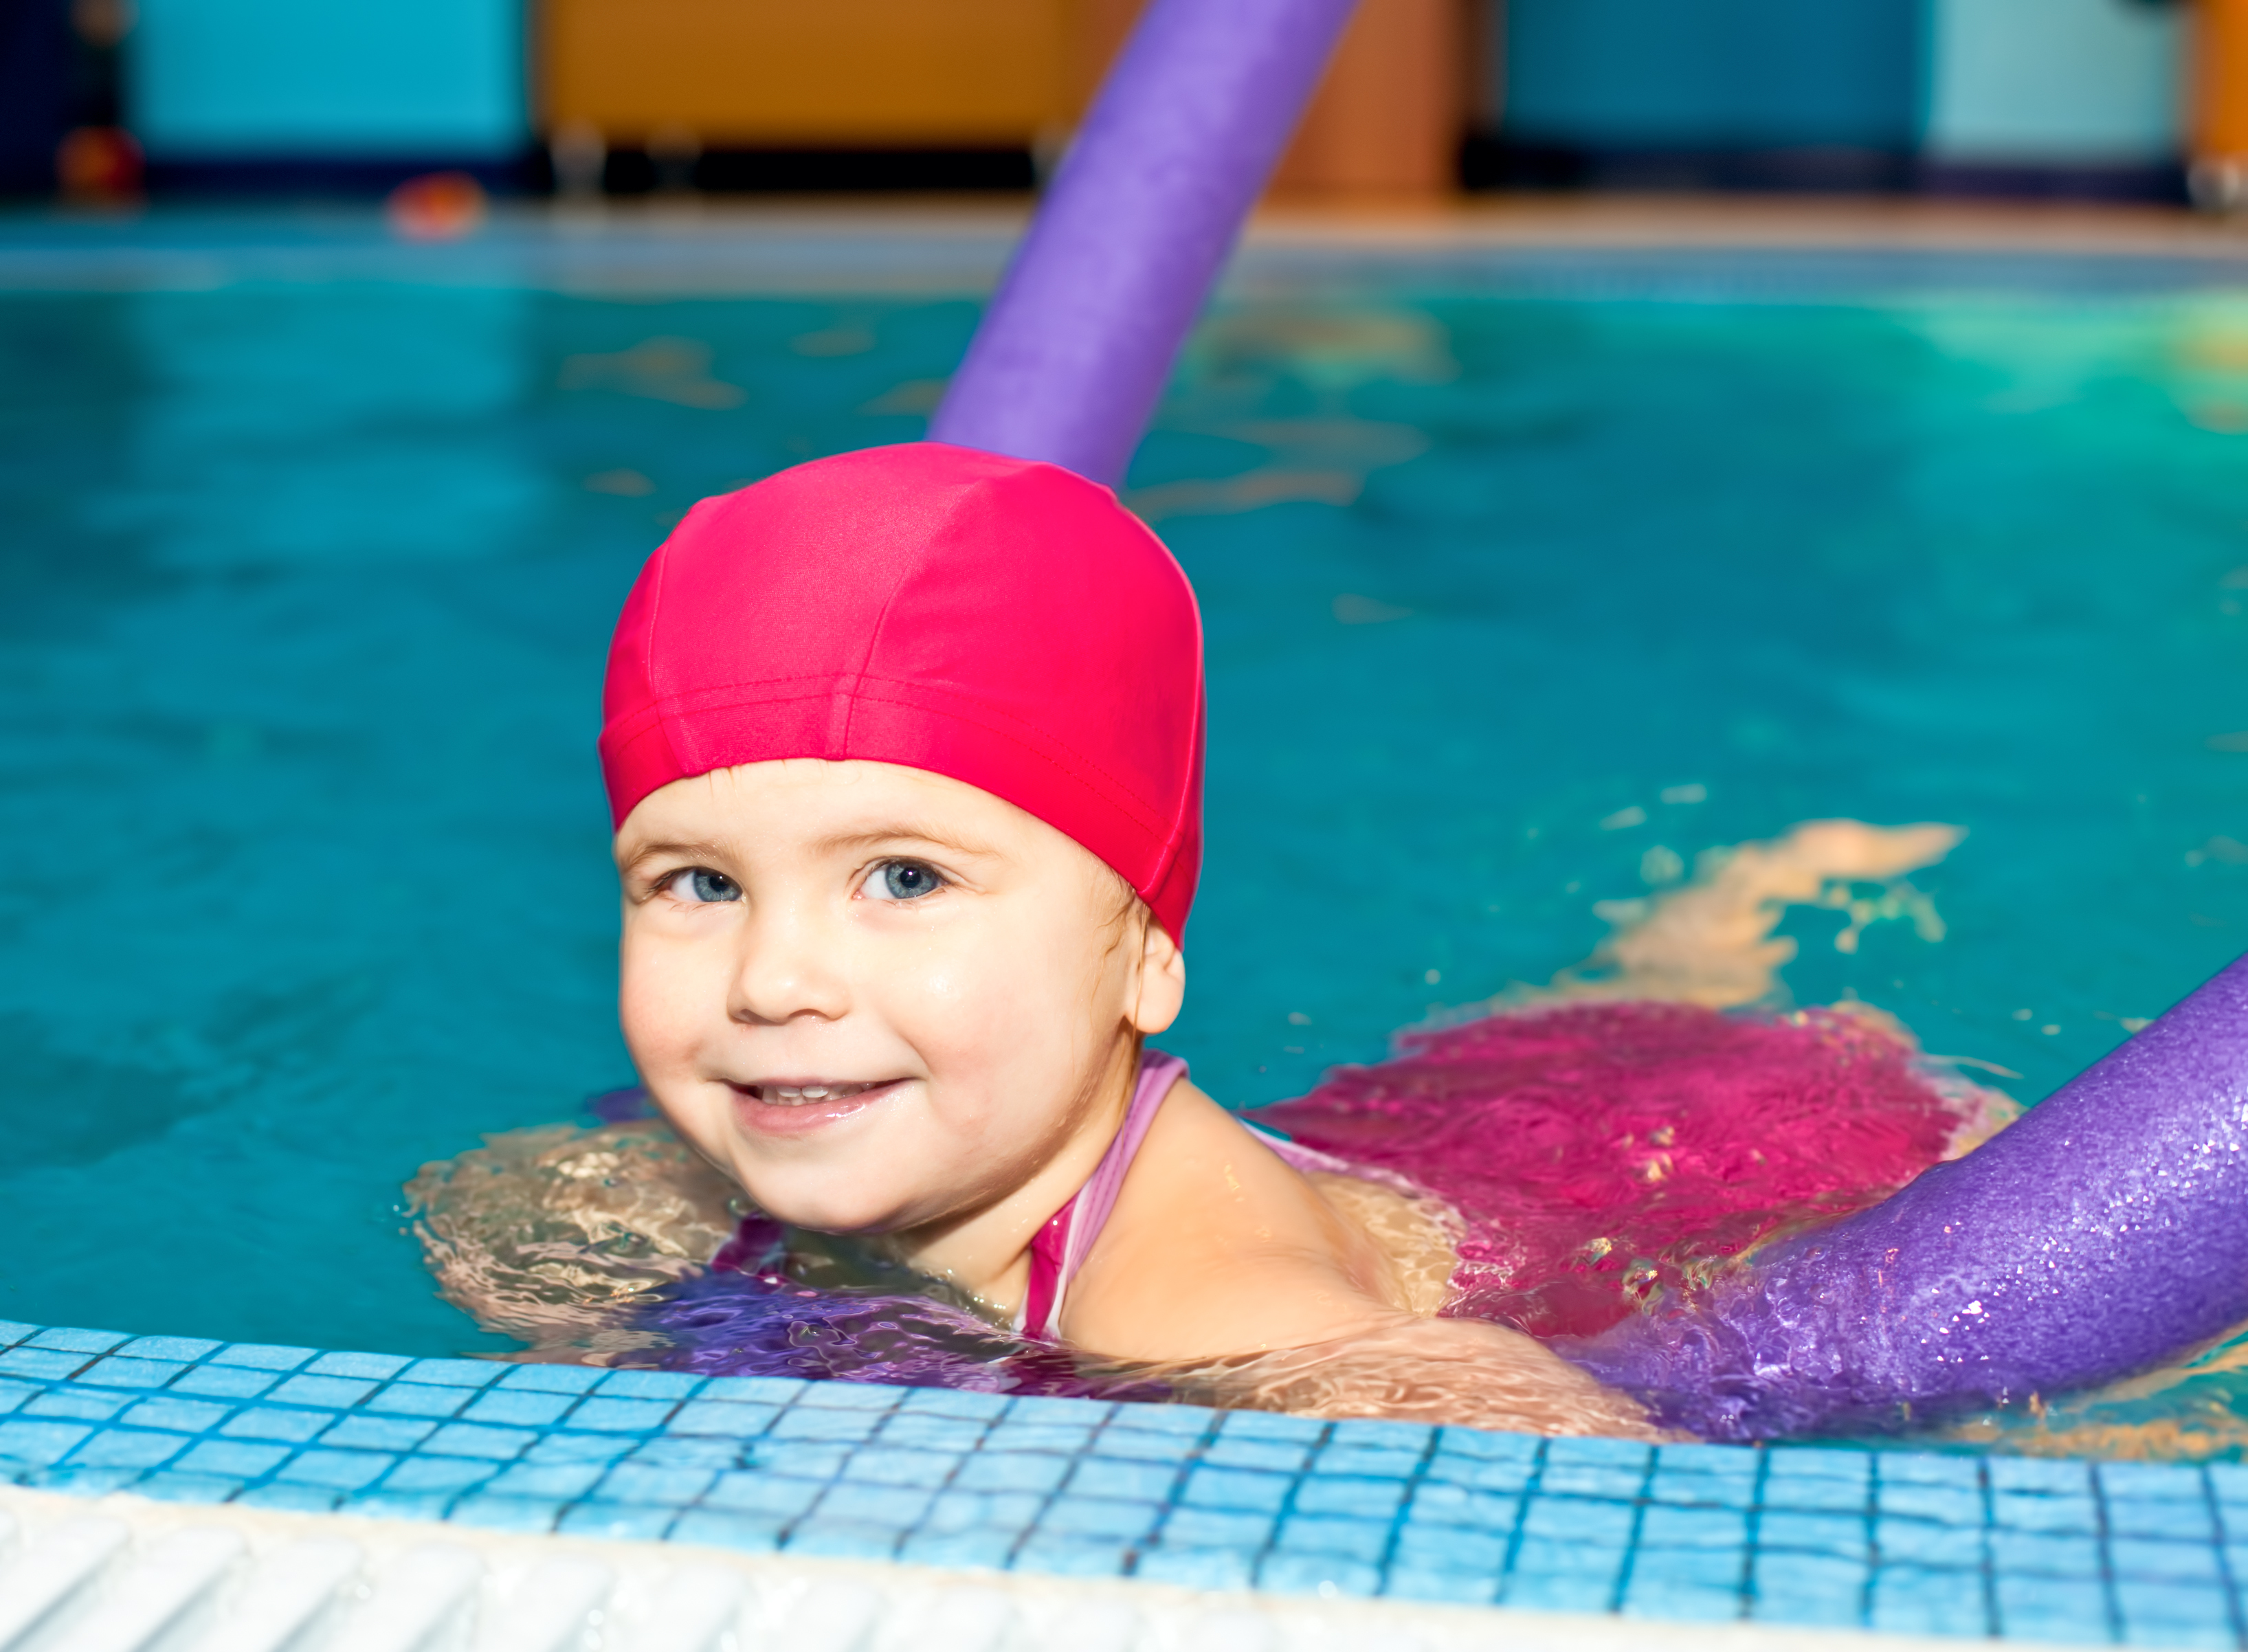 bigstock-Child-In-A-Swimming-Pool-11160815 Woggles, Arm Bands or Swimfin? Which One Is Best?